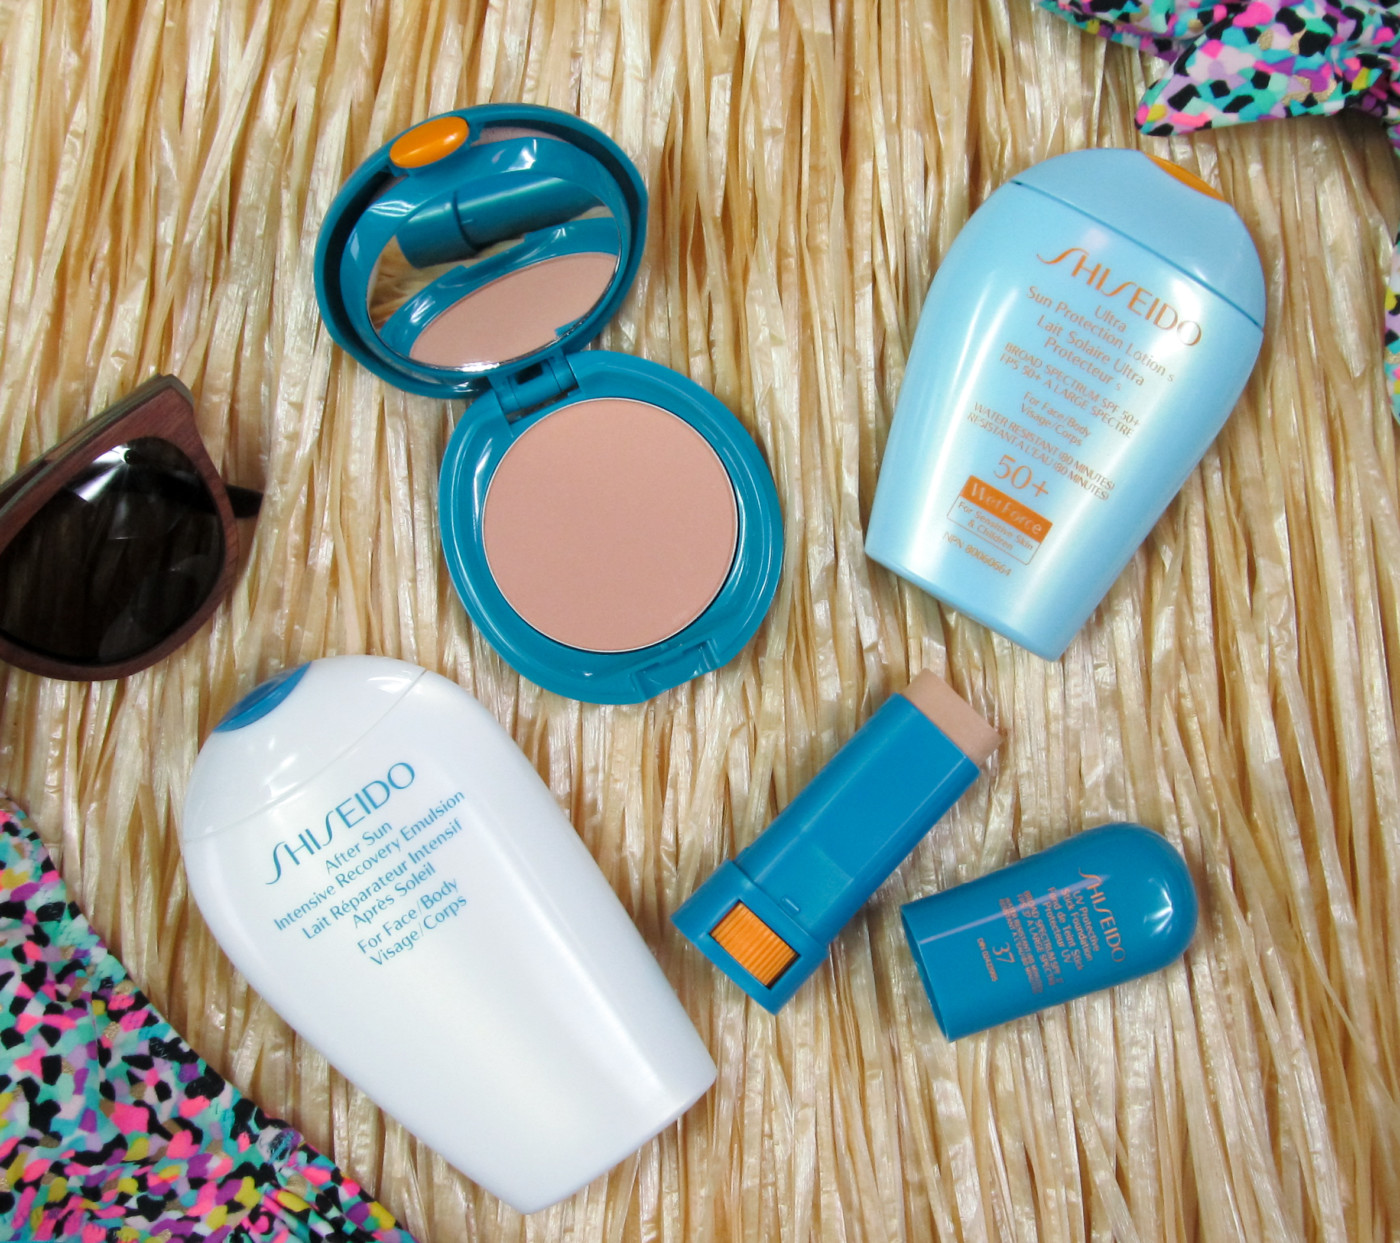 shiseido suncare, shiseido uv protective compact, shiseido uv protective stick foundation, shiseido ultra sun protection lotion, shiseido after sun intensive recovery emulsion, makeup with sunscreen in it, what makeup should i wear to the beach, what makeup has spf in it, how can i protect my skin from the sun, shiseido sun protection, best sunscreen for sensitive skin, sunscreen sensitive skin, how can i protect my skin from the sun, what to pack on vacation